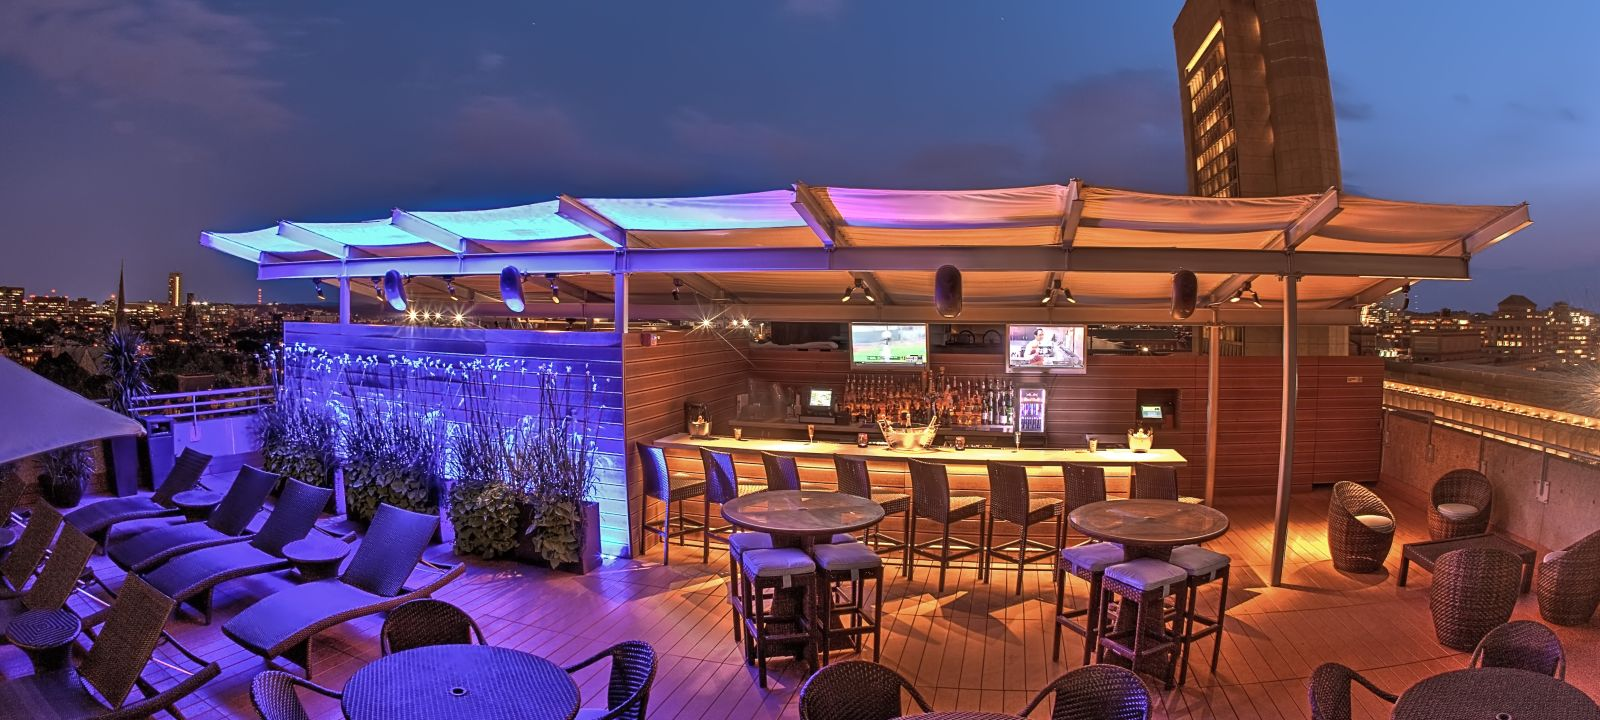 The Colonnade hotel with rooftop bar in Boston along with tables and chairs at night